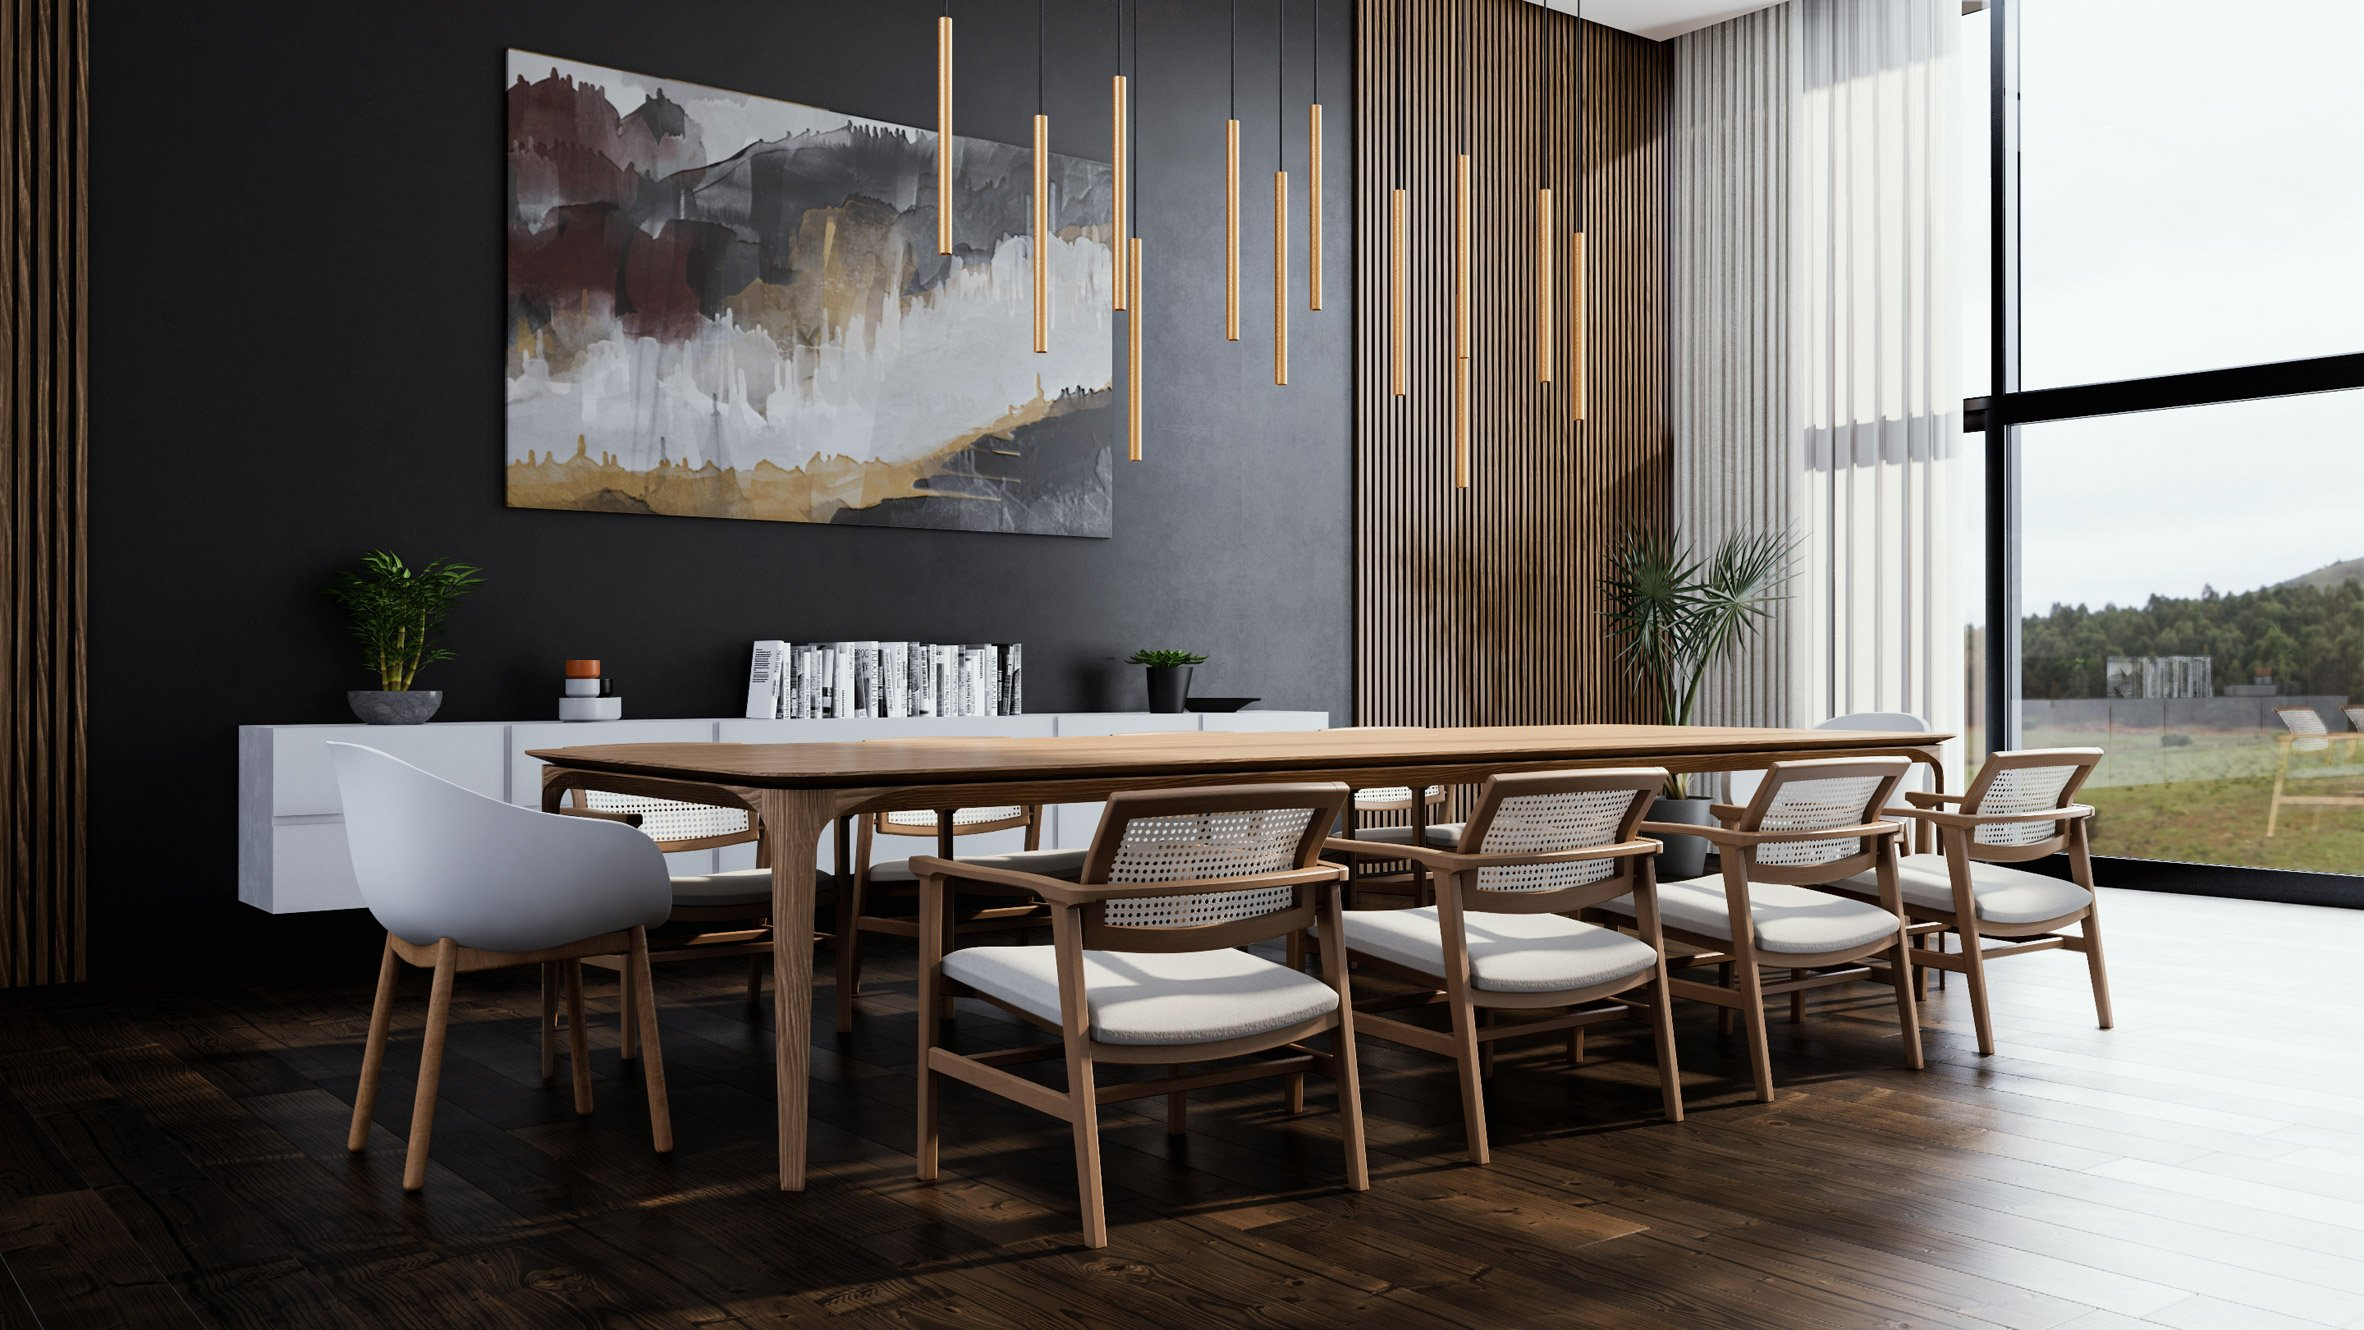 A 3D render of a residential dining room